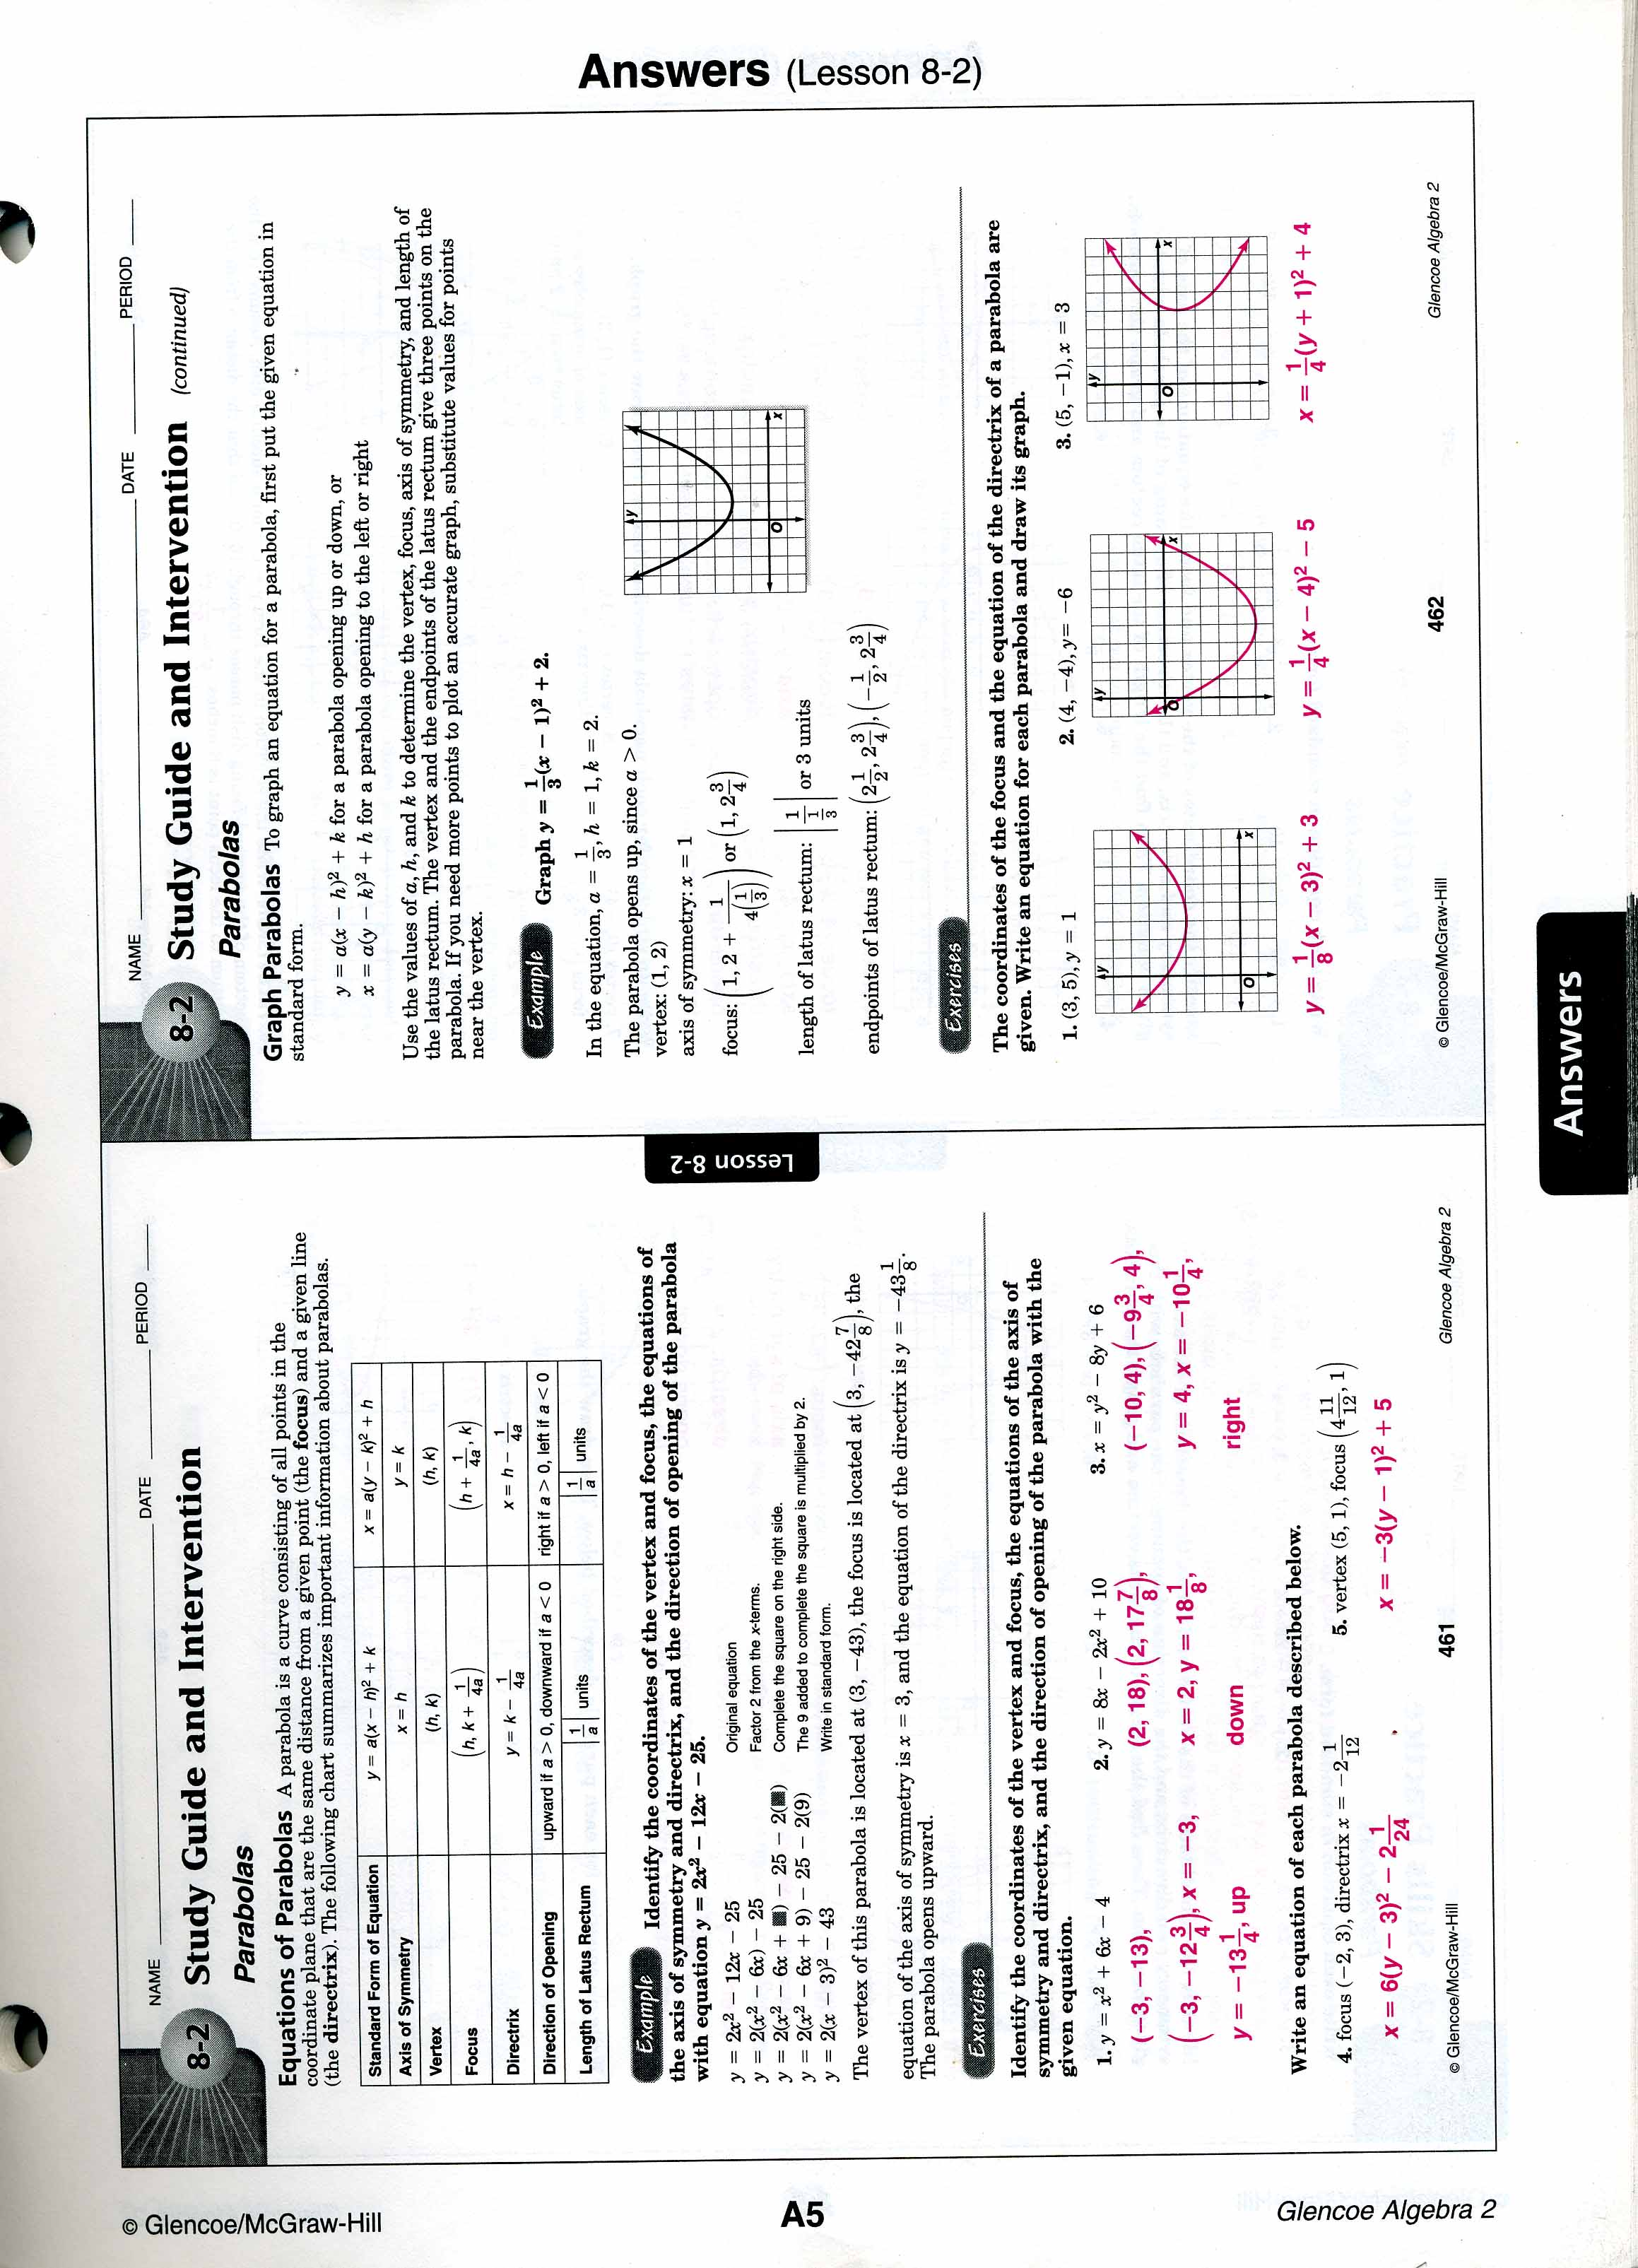 Worksheet Algebra 2 Worksheets And Answers mrscabral algebra 2 worksheet answers worksheets 8 2